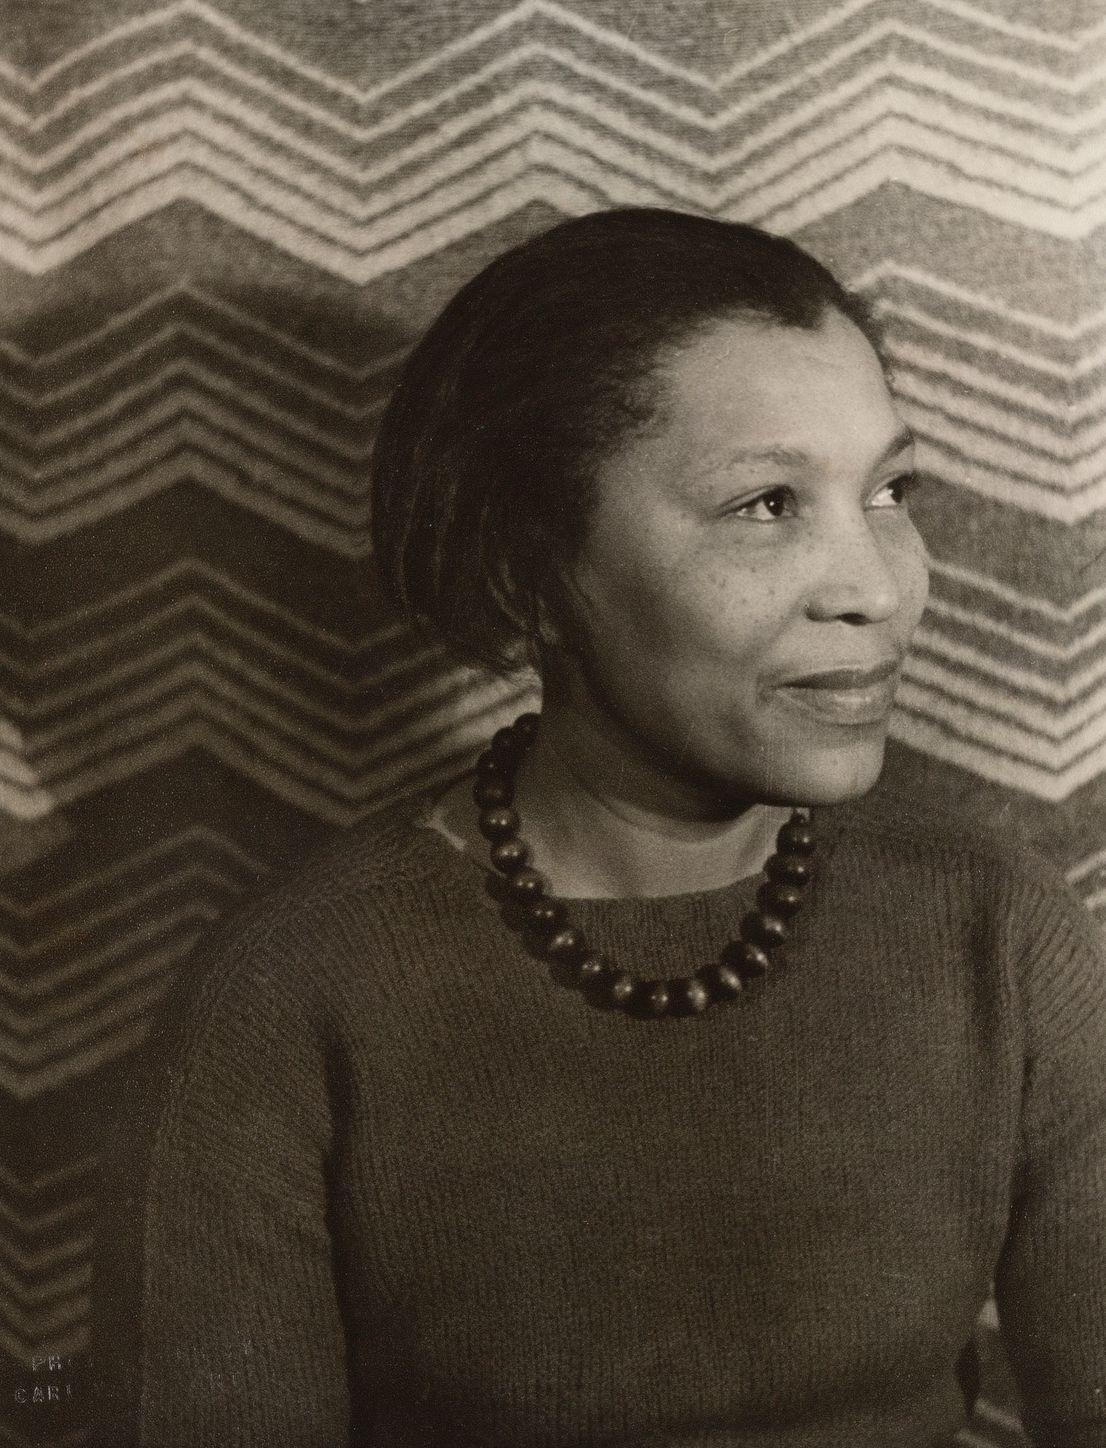 zora neale hurston Zora neale hurston was born on jan 7, 1891, in notasulga, alabama hurston moved with her family to eatonville, florida, when she was still a toddler her writings reveal no recollection of her alabama beginnings.